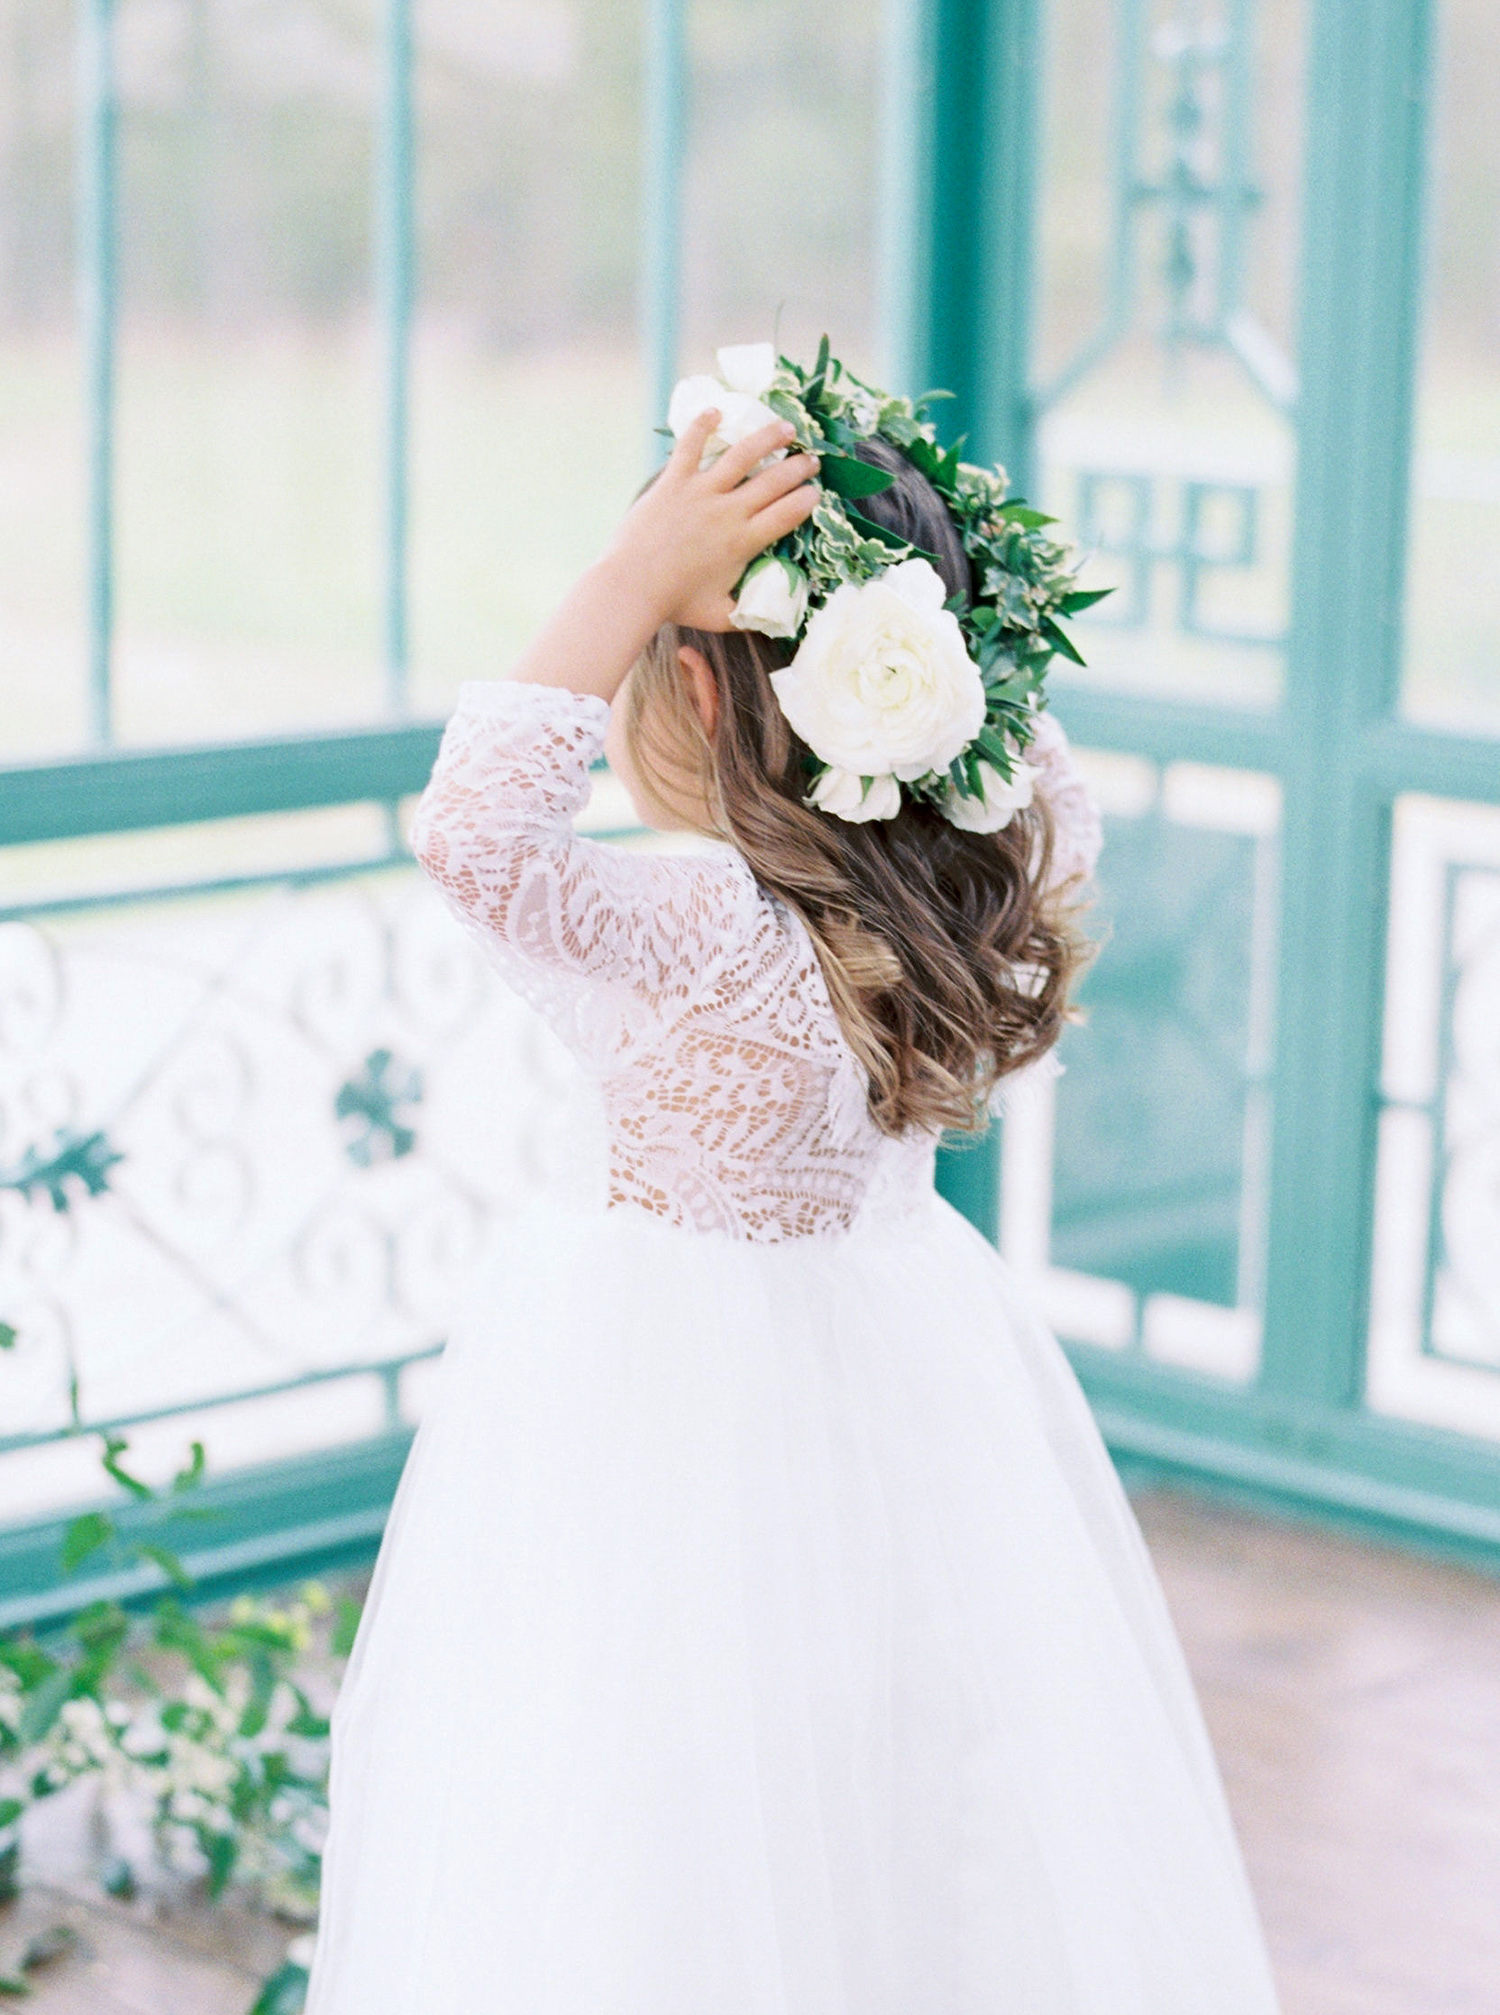 evan dustin vow renewal daughter flower girl